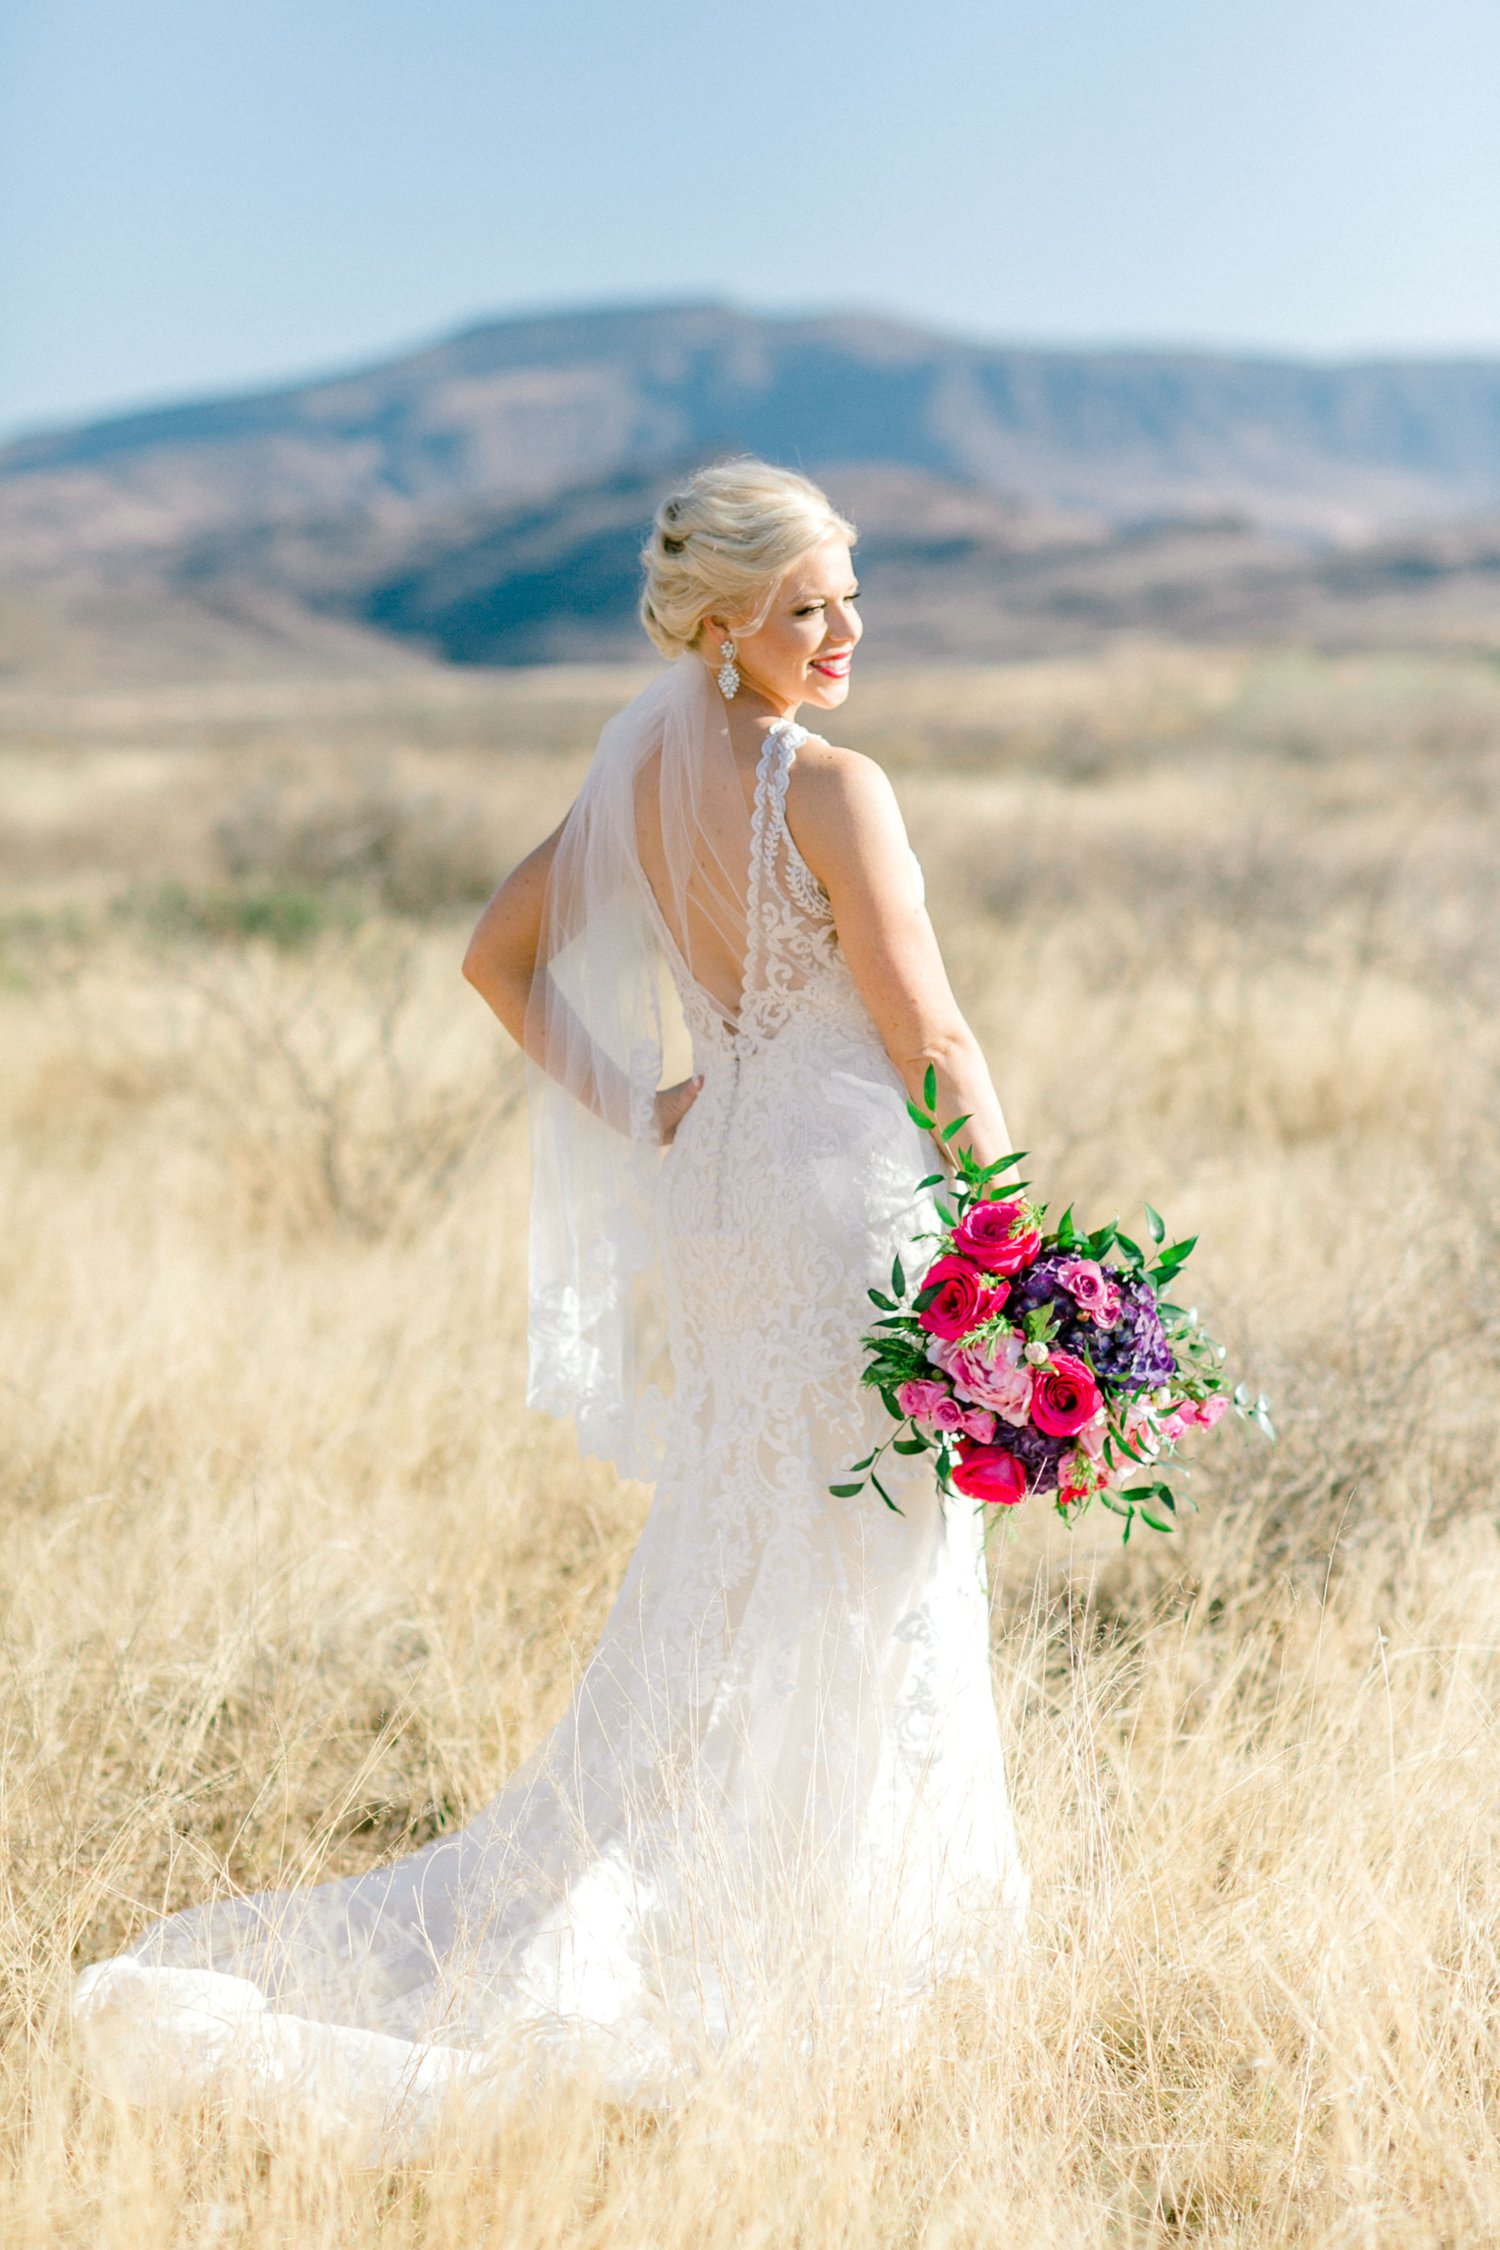 Jenna-evans-bridals-balmorhea-texas-fort-davis-wedding-photographer-lubbock-photographer__0013.jpg